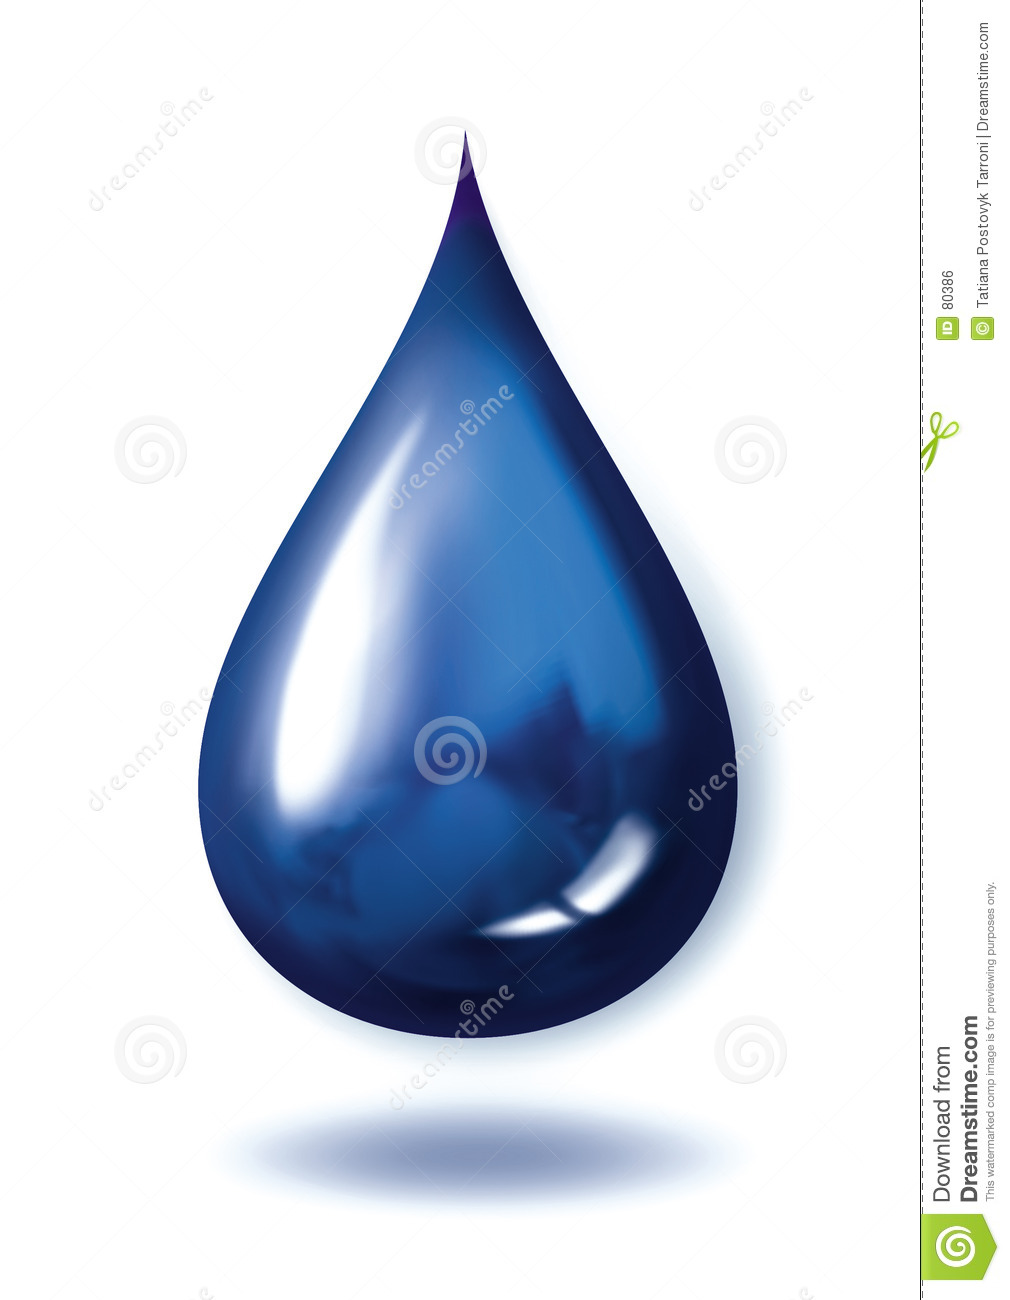 Blue Droplet Royalty Free Stock Image - Image: 80386